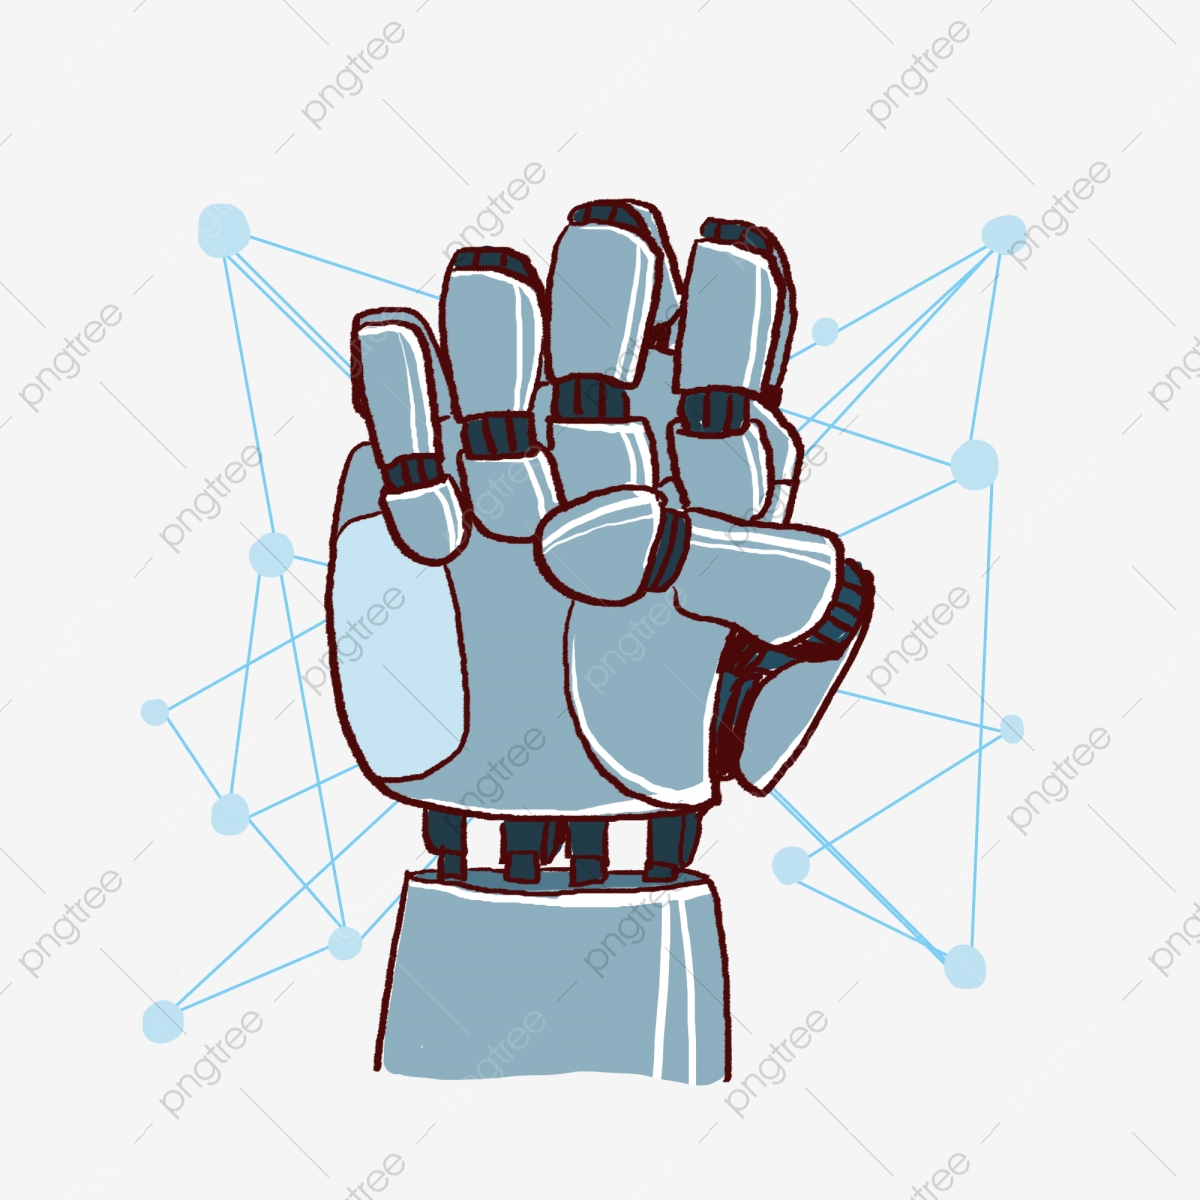 Robotic Hand Png Images Vector And Psd Files Free Download On Pngtree 24,000+ vectors, stock photos & psd files. https pngtree com freepng cartoon hand painted robotic hand fist png free material 4425053 html